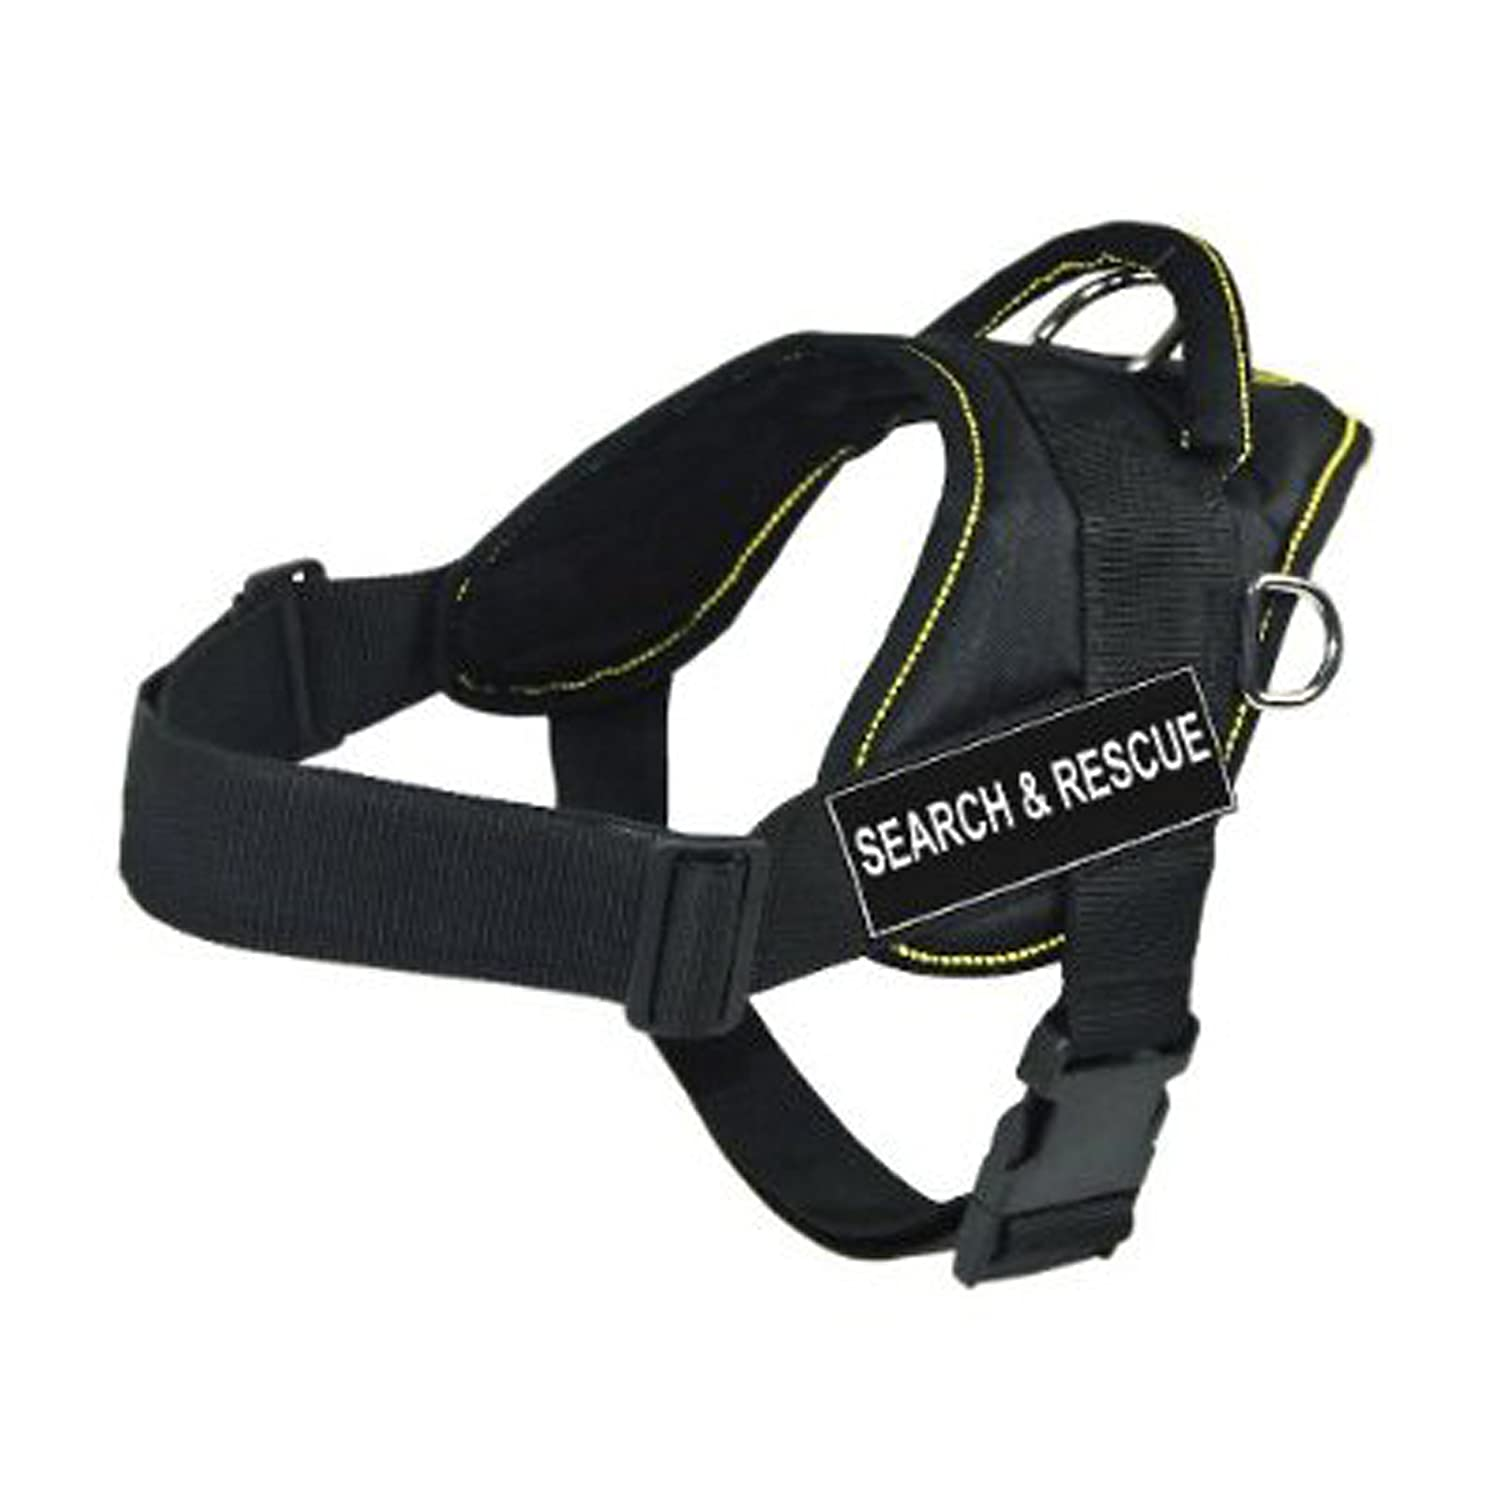 Dean & Tyler Fun Works Harness, Search and Rescue, Black with Yellow Trim, Large, Fits Girth Size  32-Inch to 42-Inch